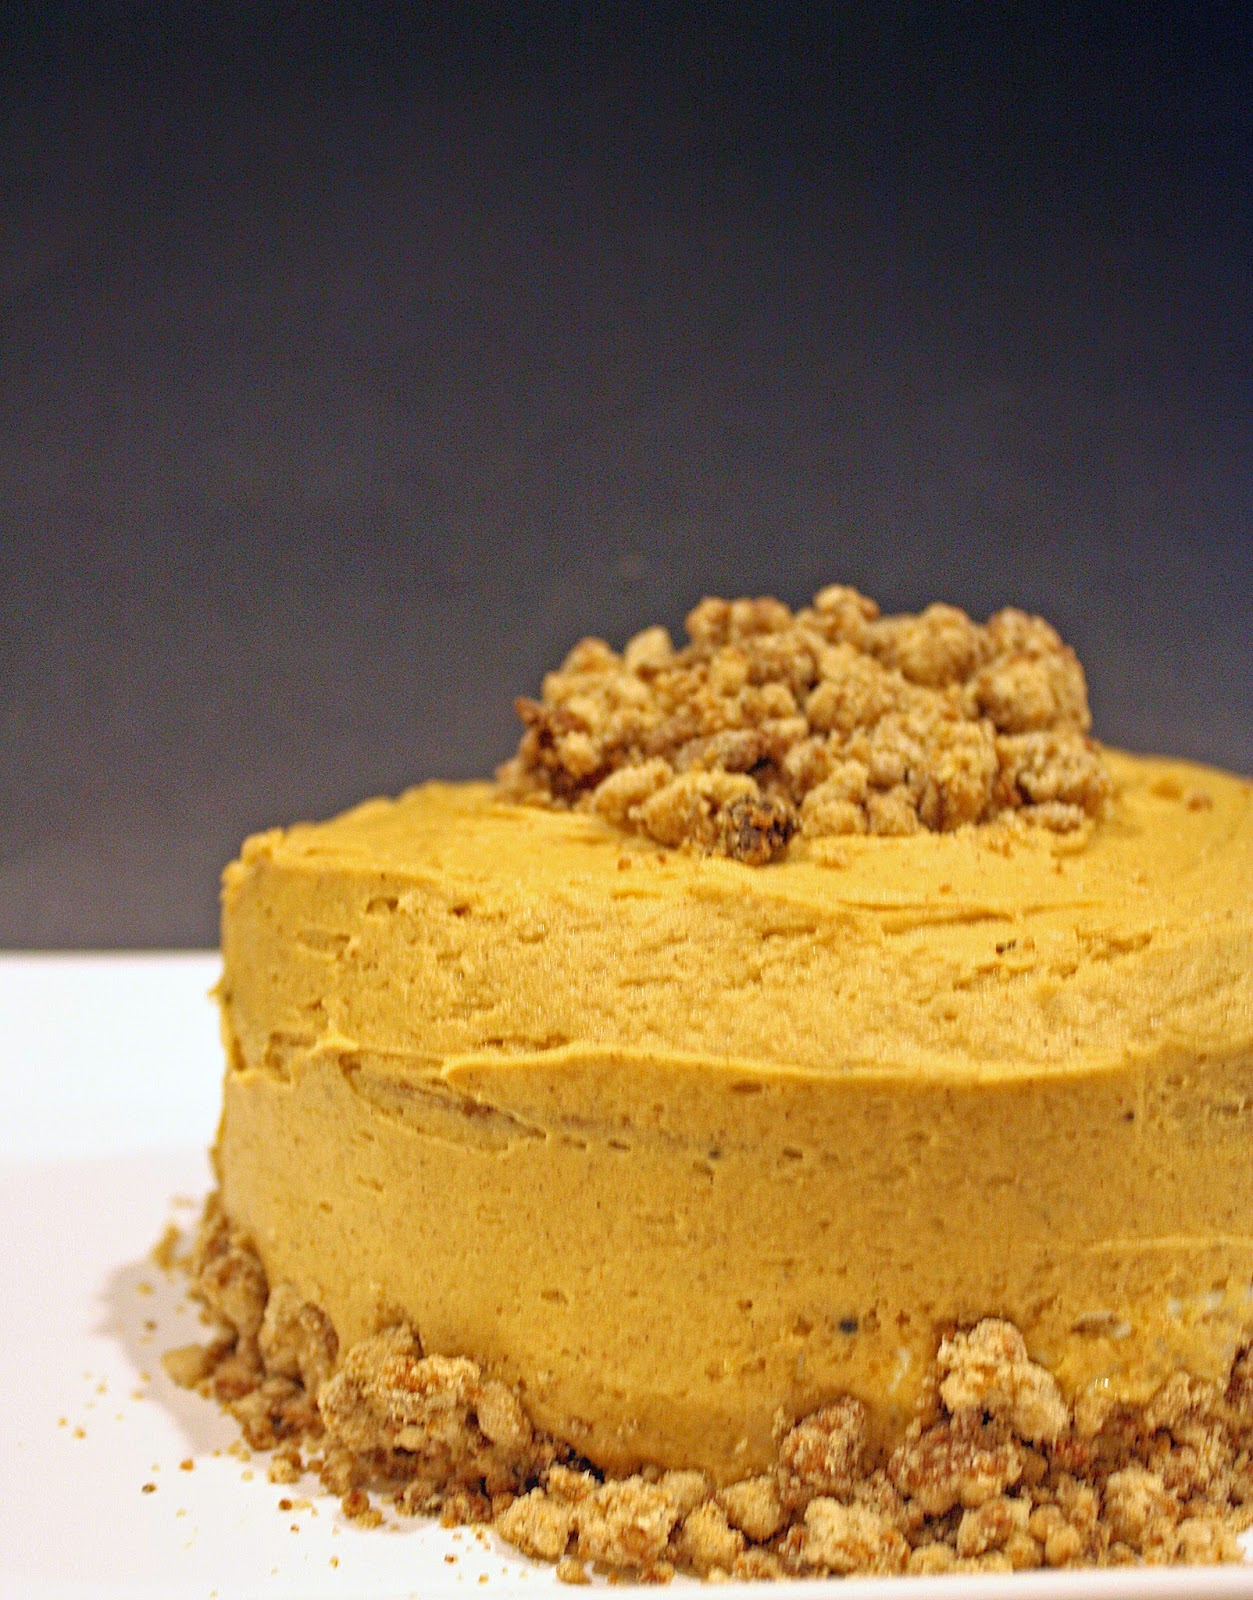 Vegan maple gingerbread layer cake with cheesecake filling and spiced crumb